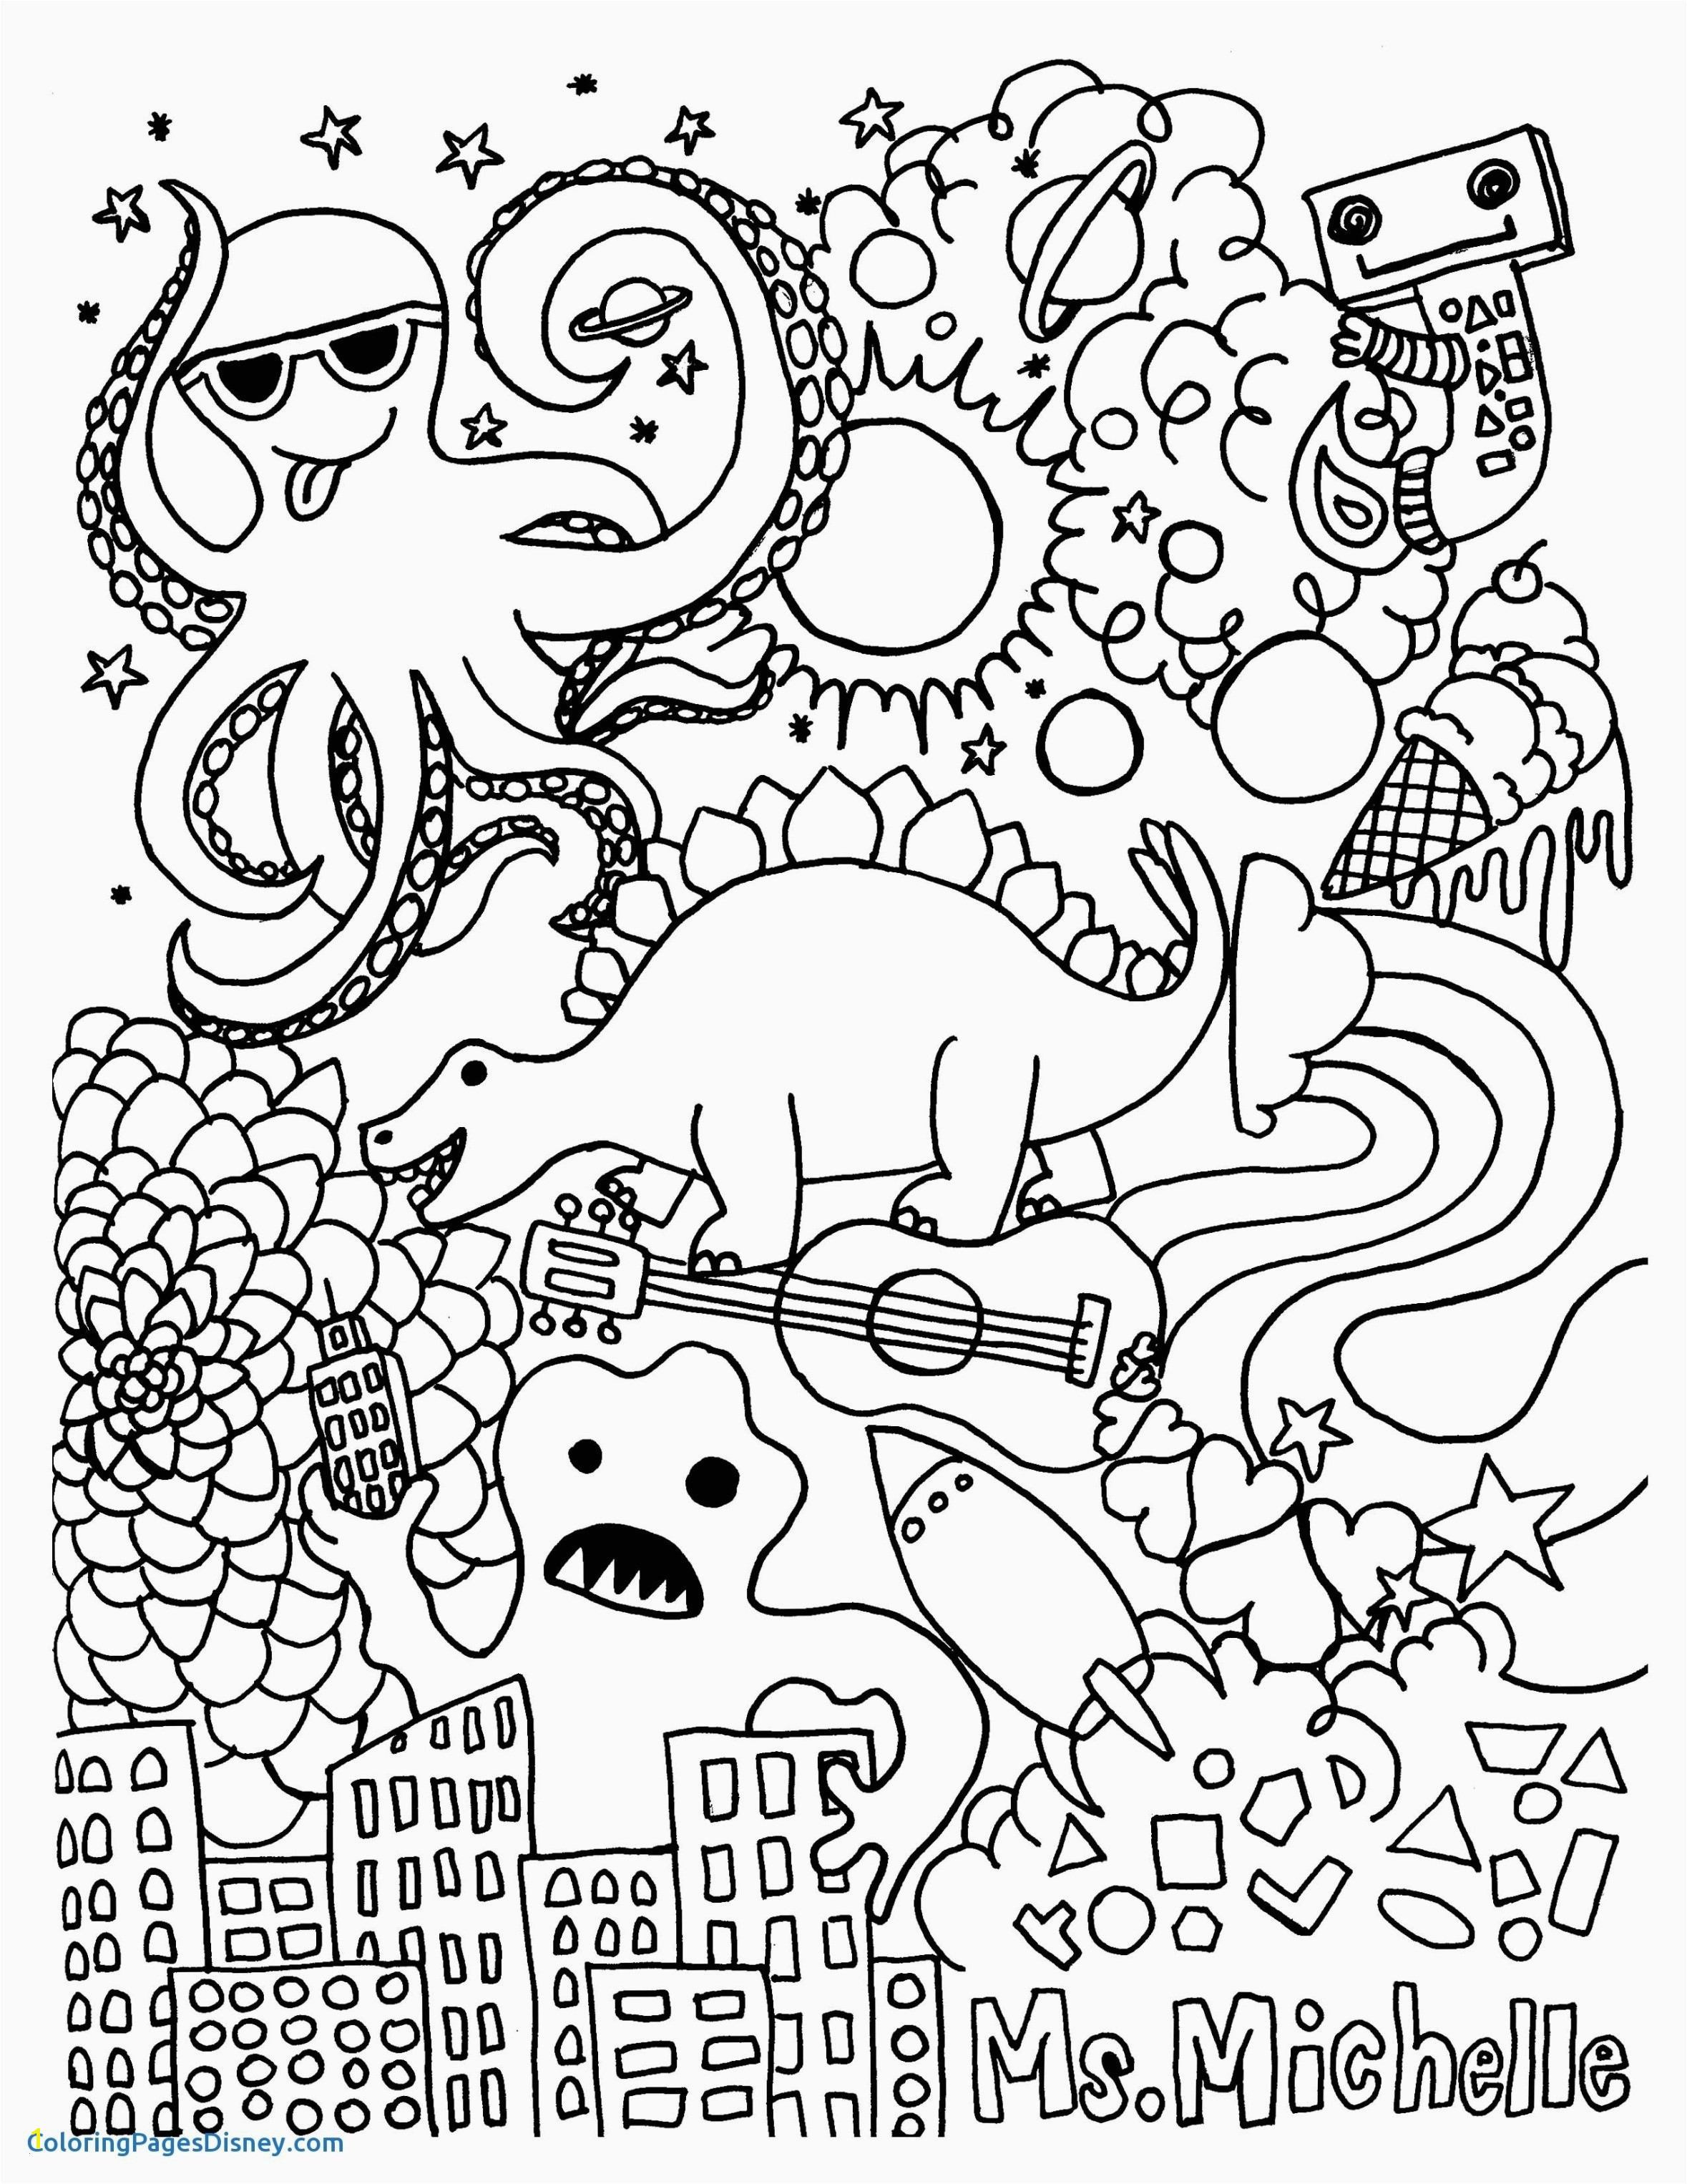 Feeding Of the Five Thousand Coloring Page 20 Fresh Feeding the Five Thousand Coloring Page Pexels